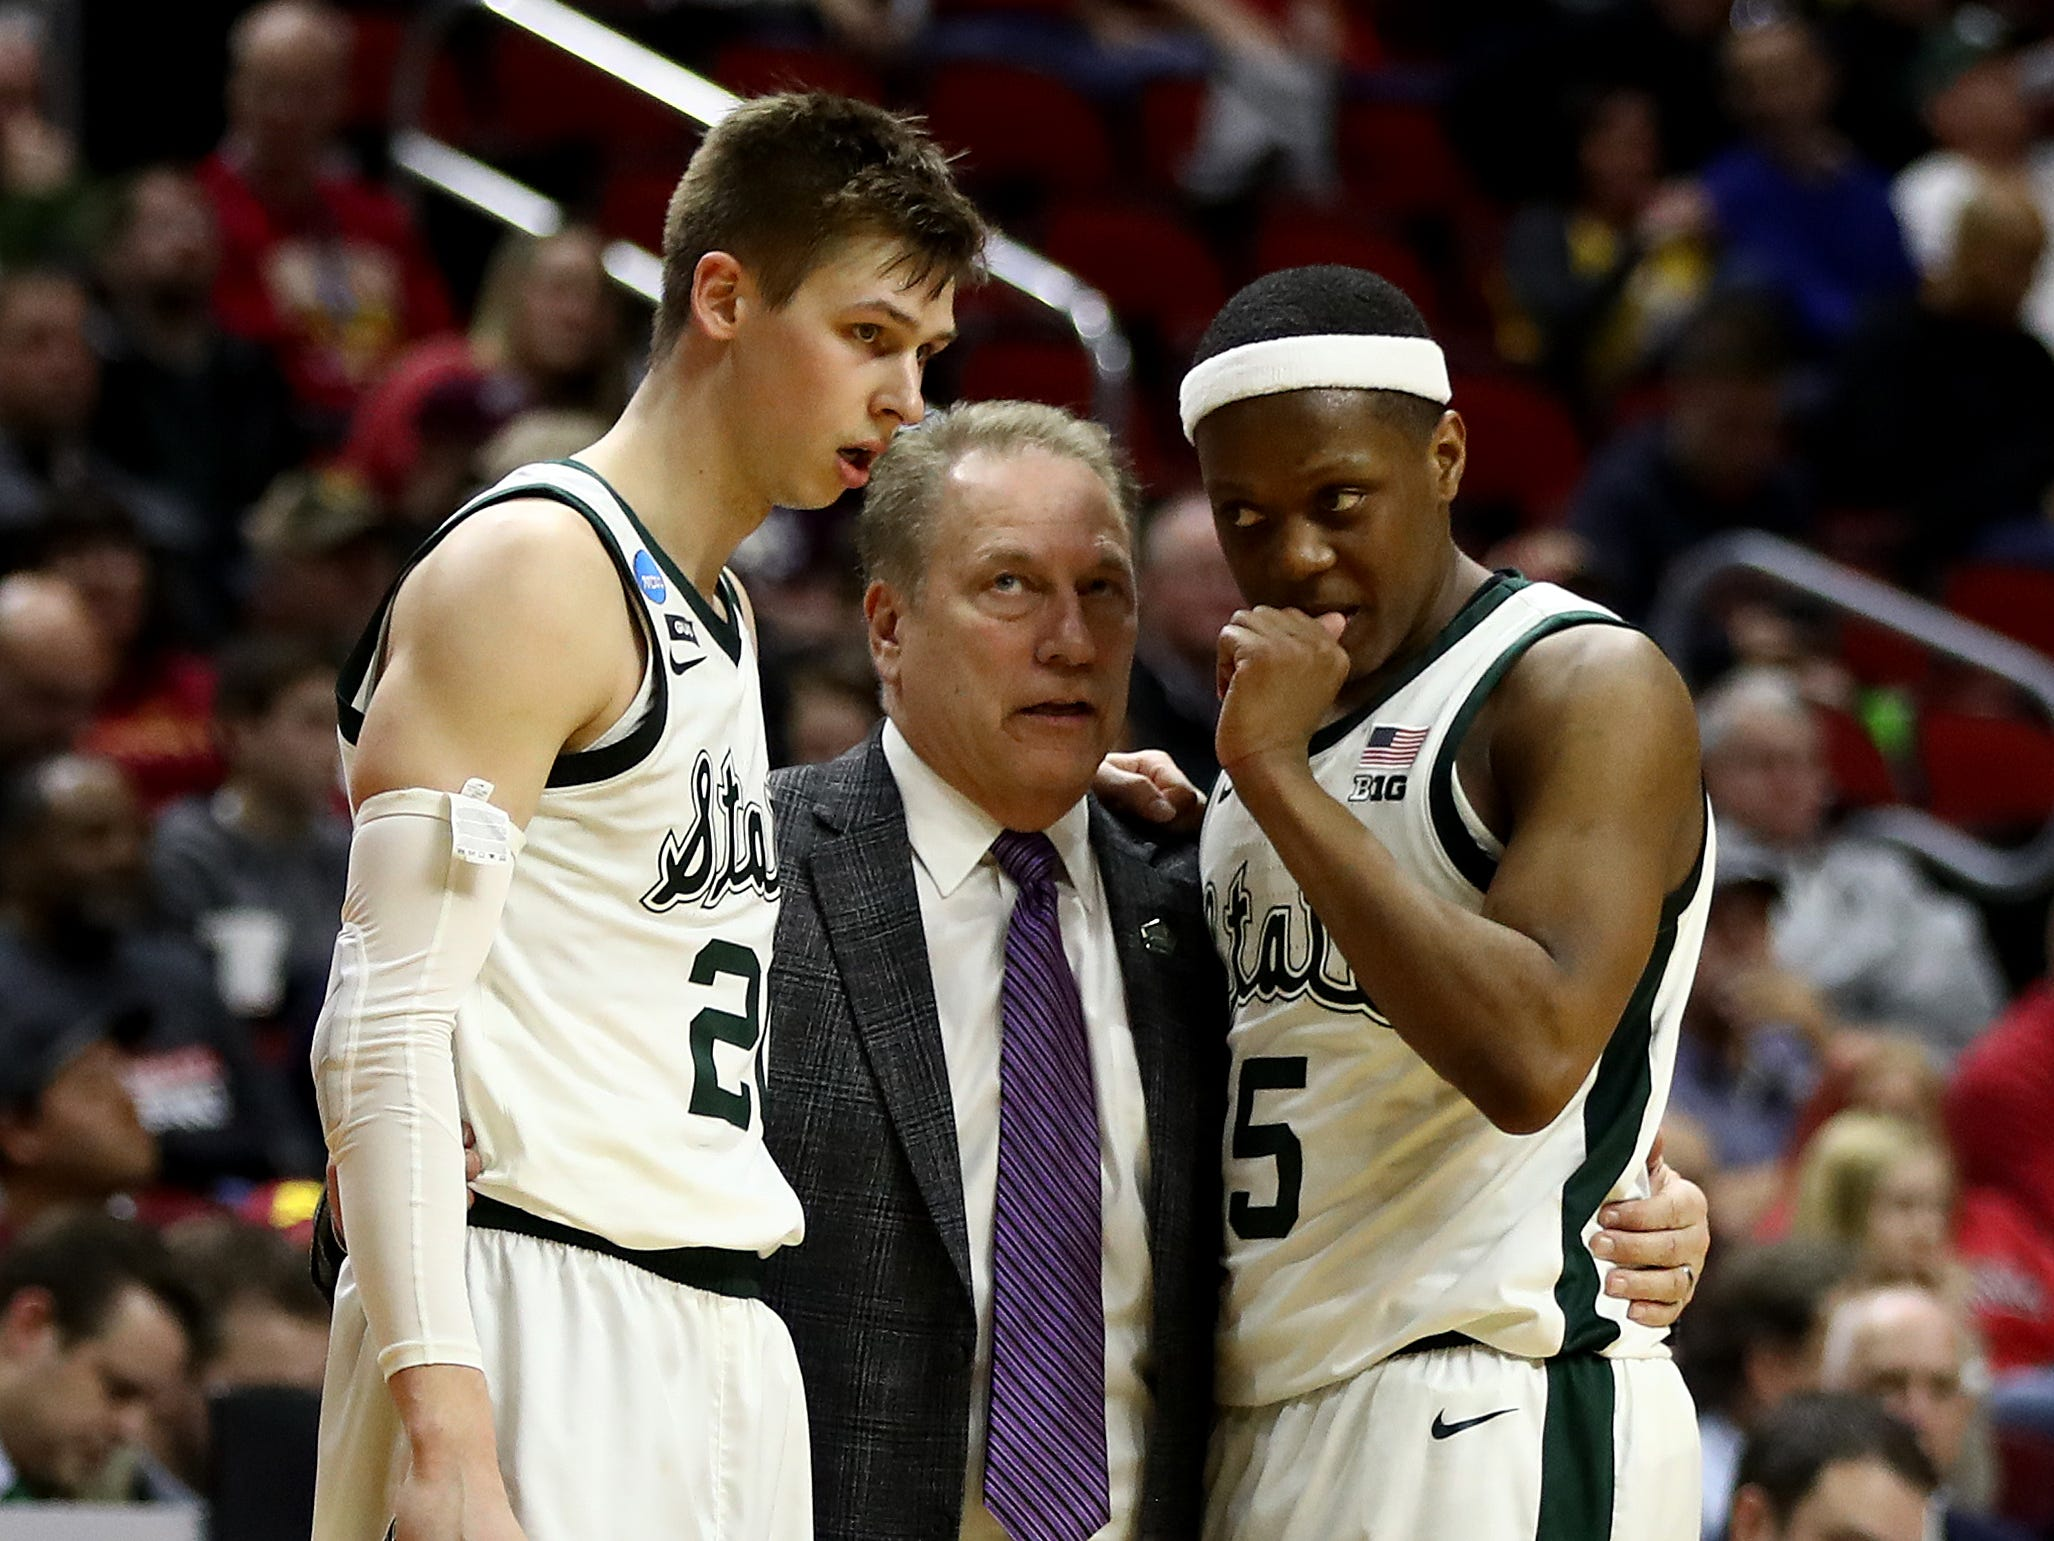 Head coach Tom Izzo of the Michigan State Spartans speaks with Matt McQuaid #20 and Cassius Winston #5 during their game against the Bradley Braves in the First Round of the NCAA Basketball Tournament at Wells Fargo Arena on March 21, 2019 in Des Moines, Iowa.